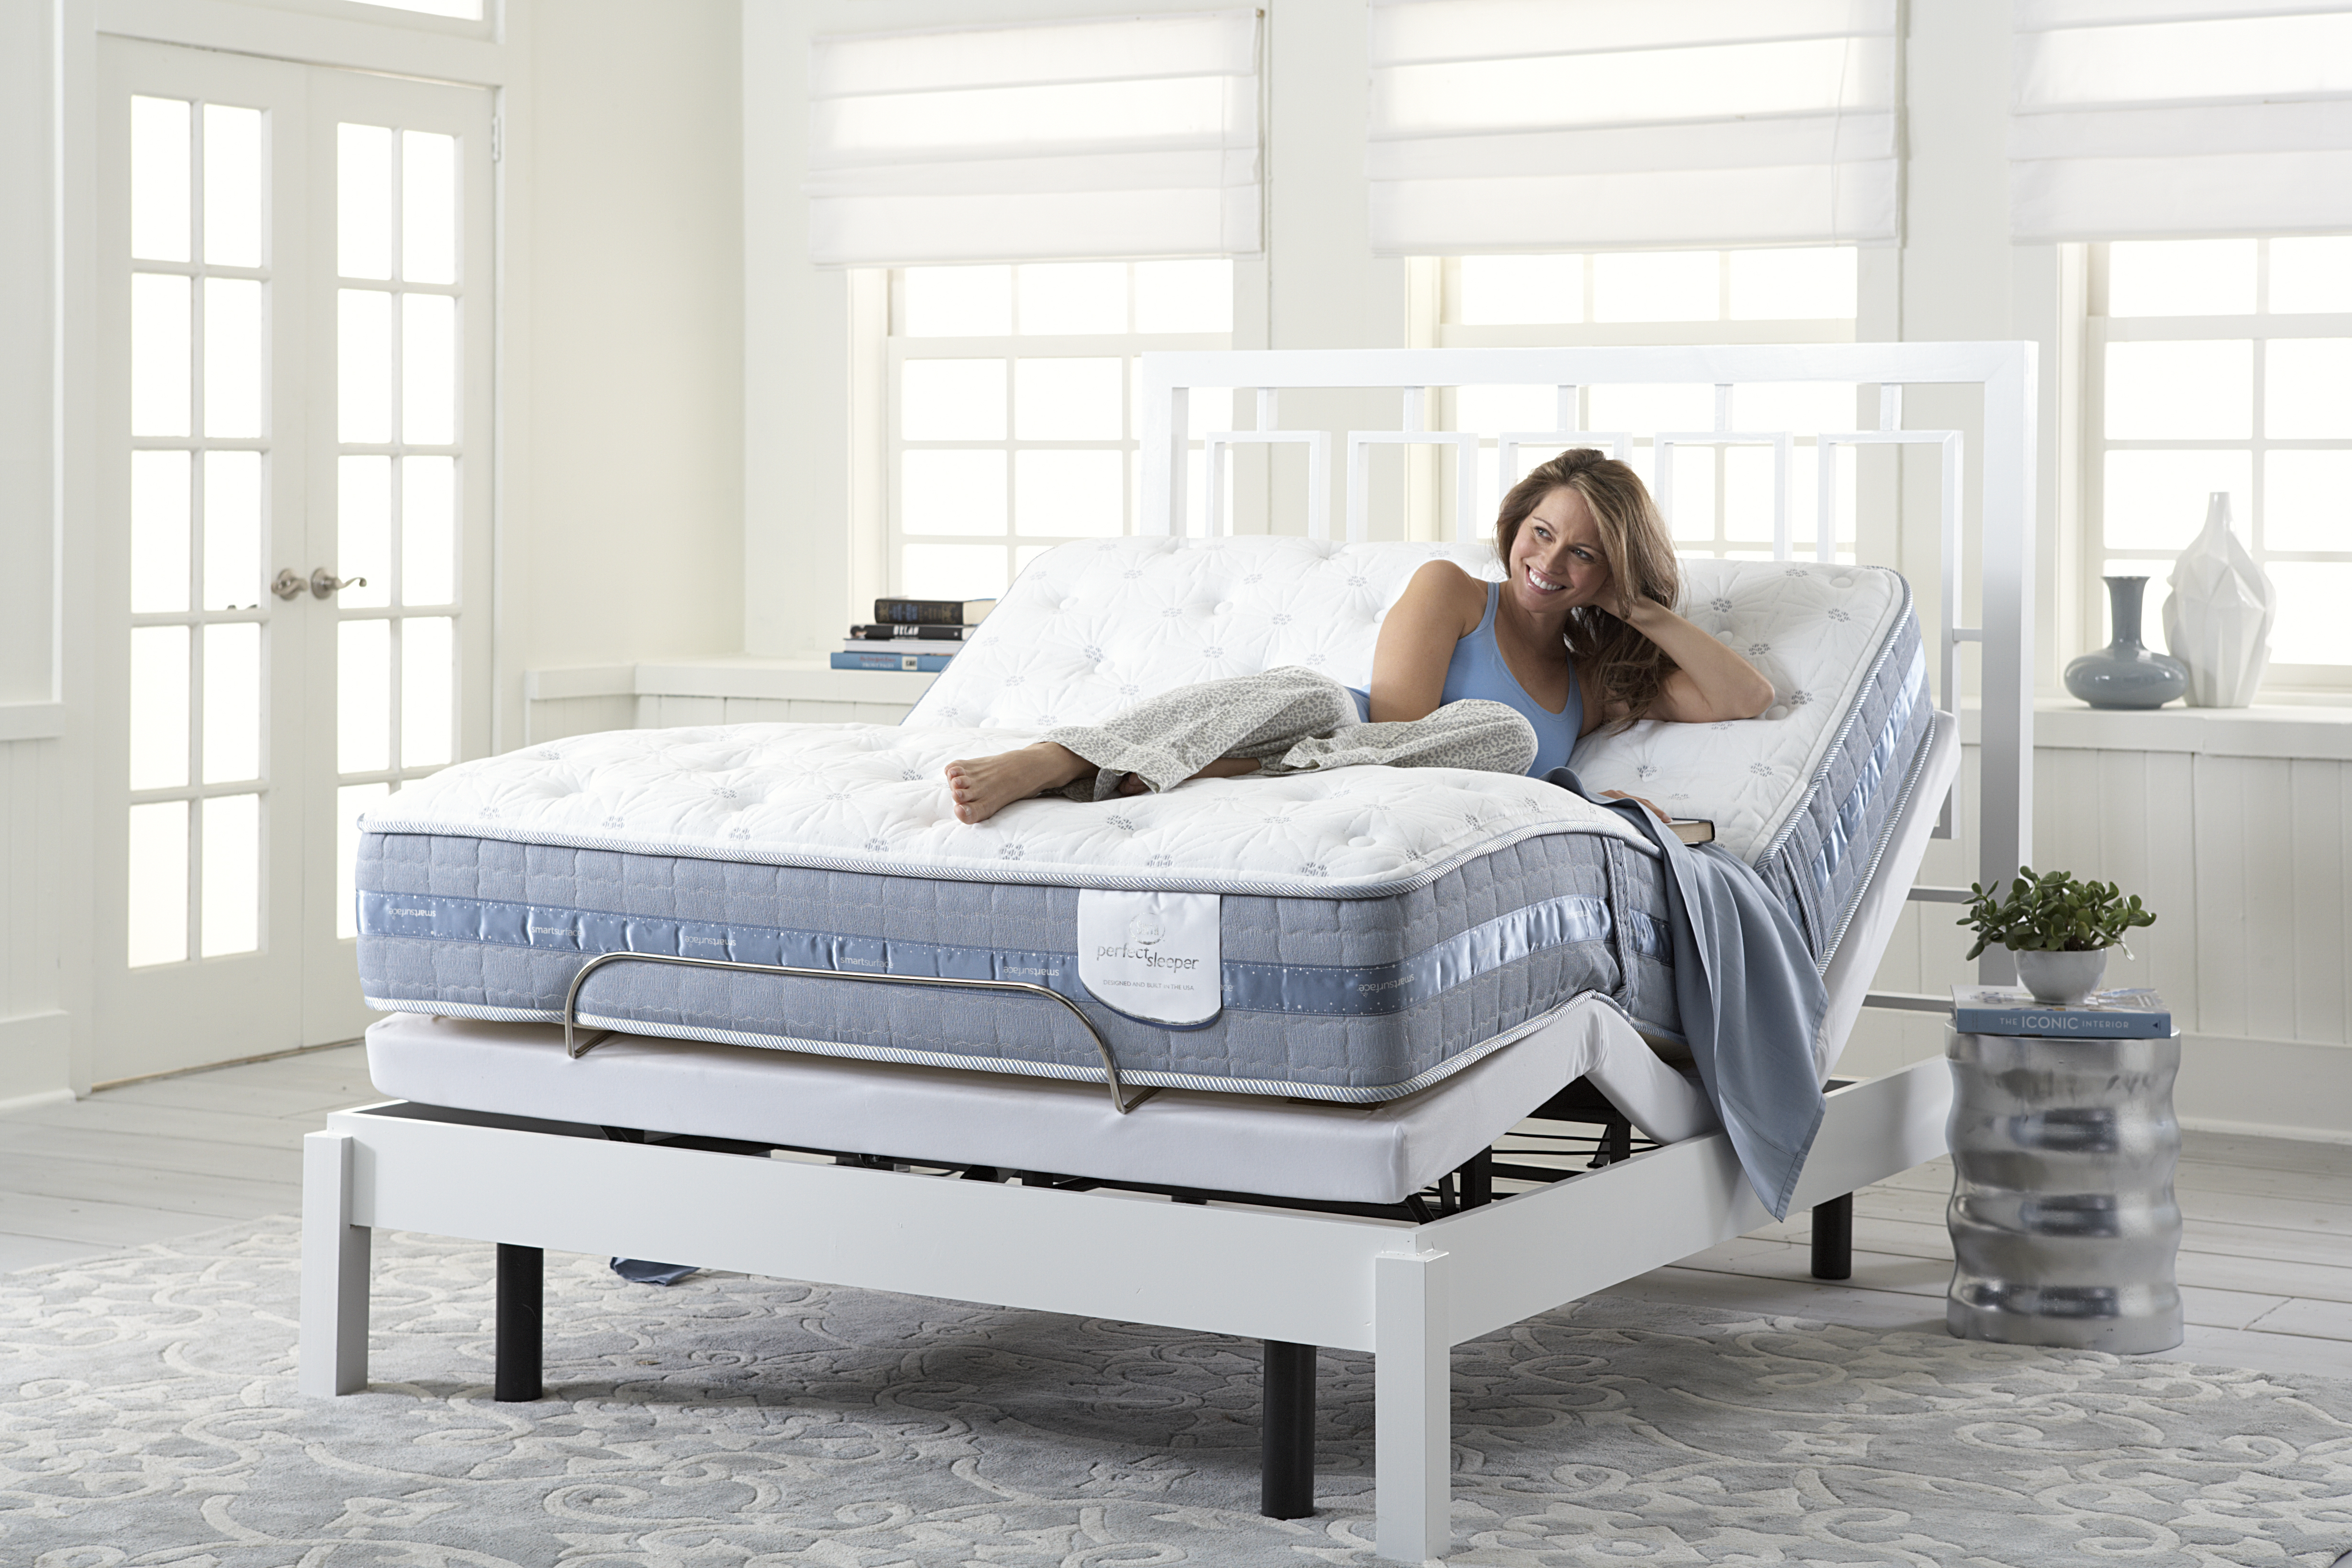 Serta Perfect Sleeper with an adjustable foundation